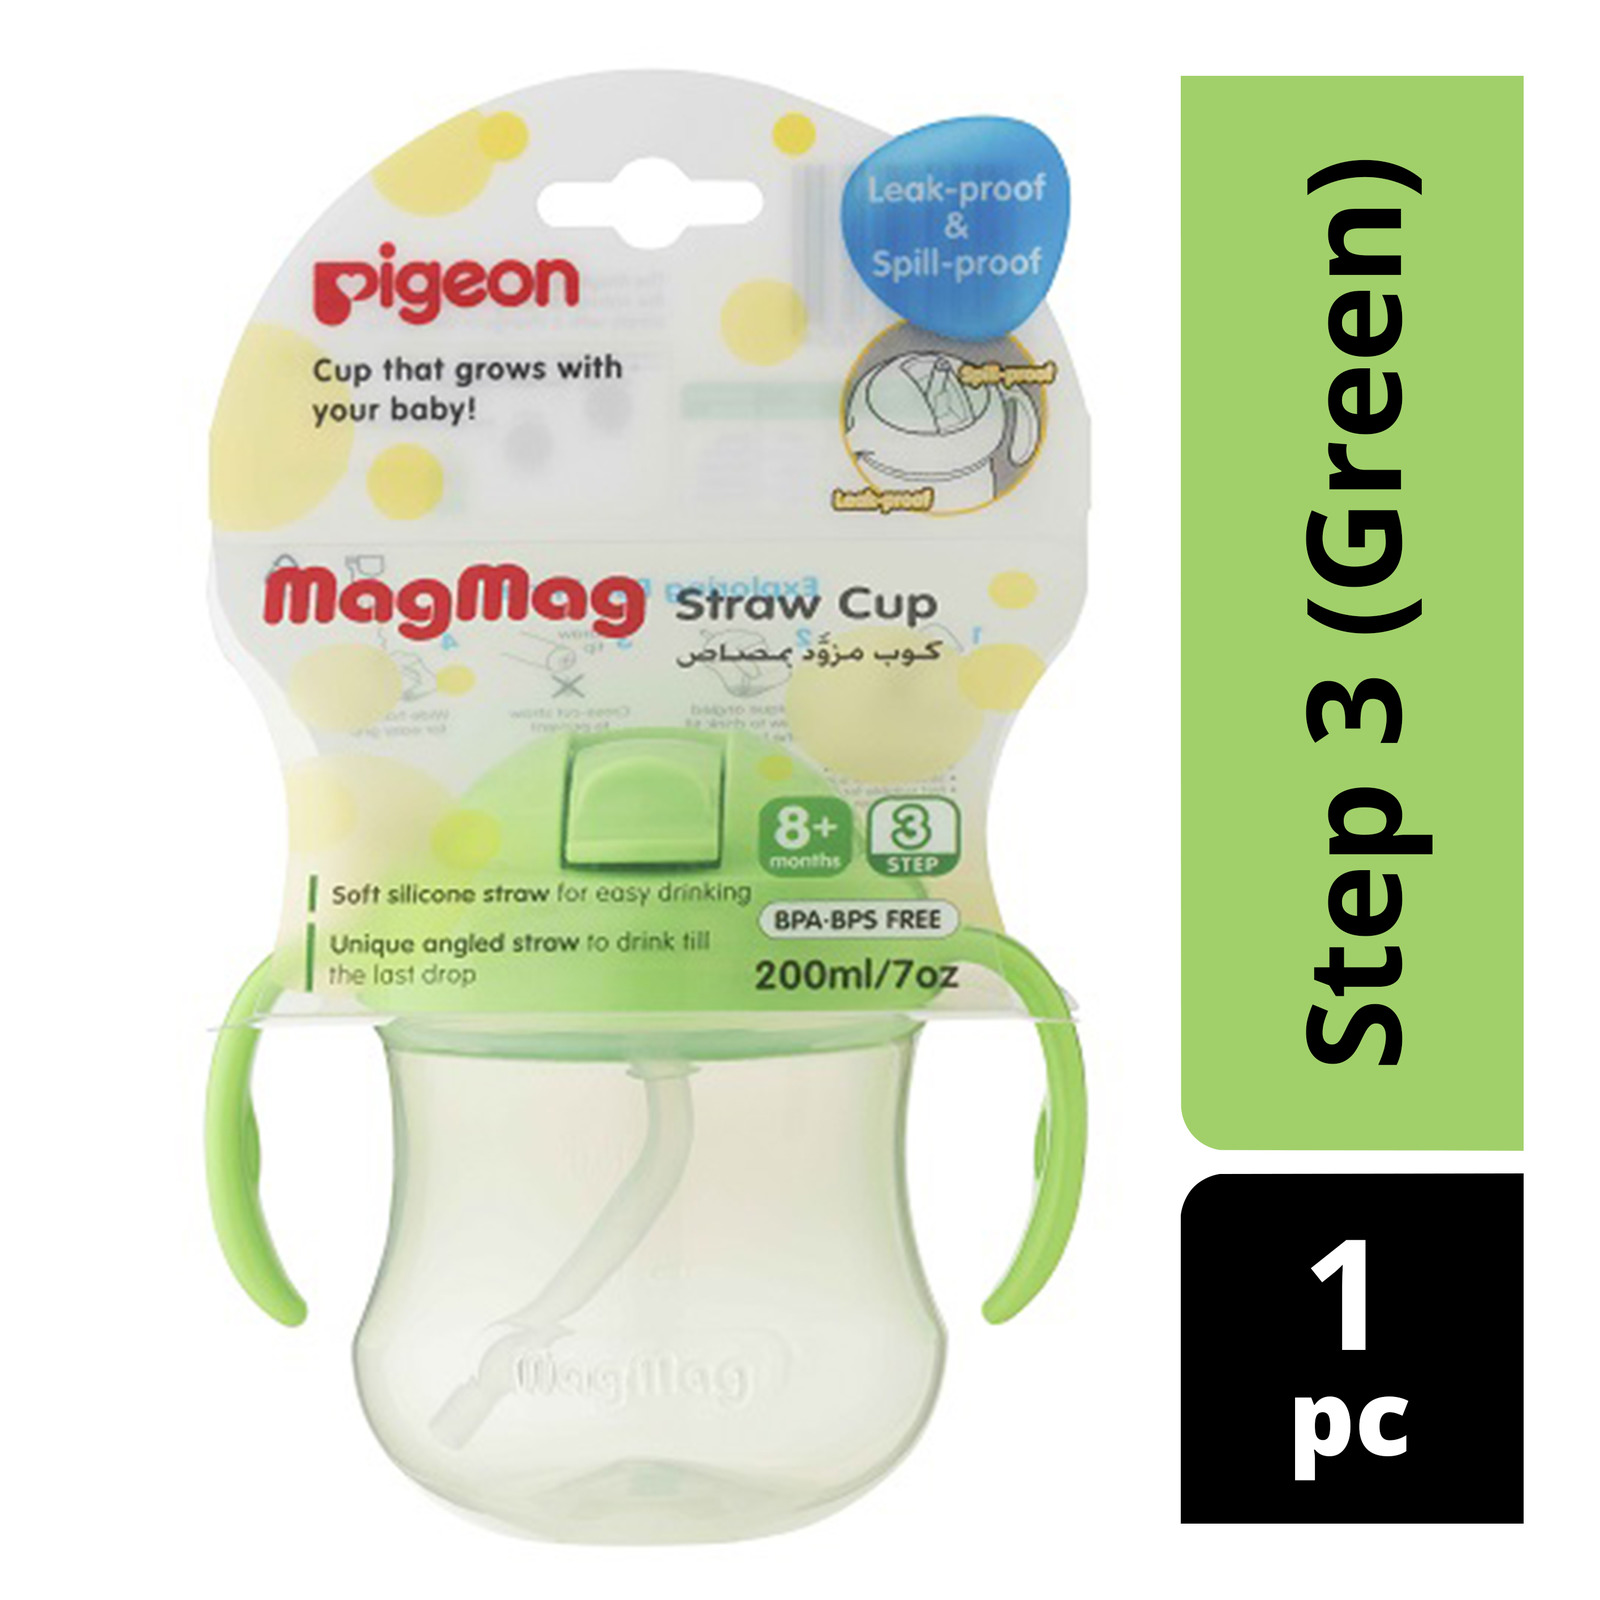 Pigeon MagMag Straw Cup - Step 3 (Green)